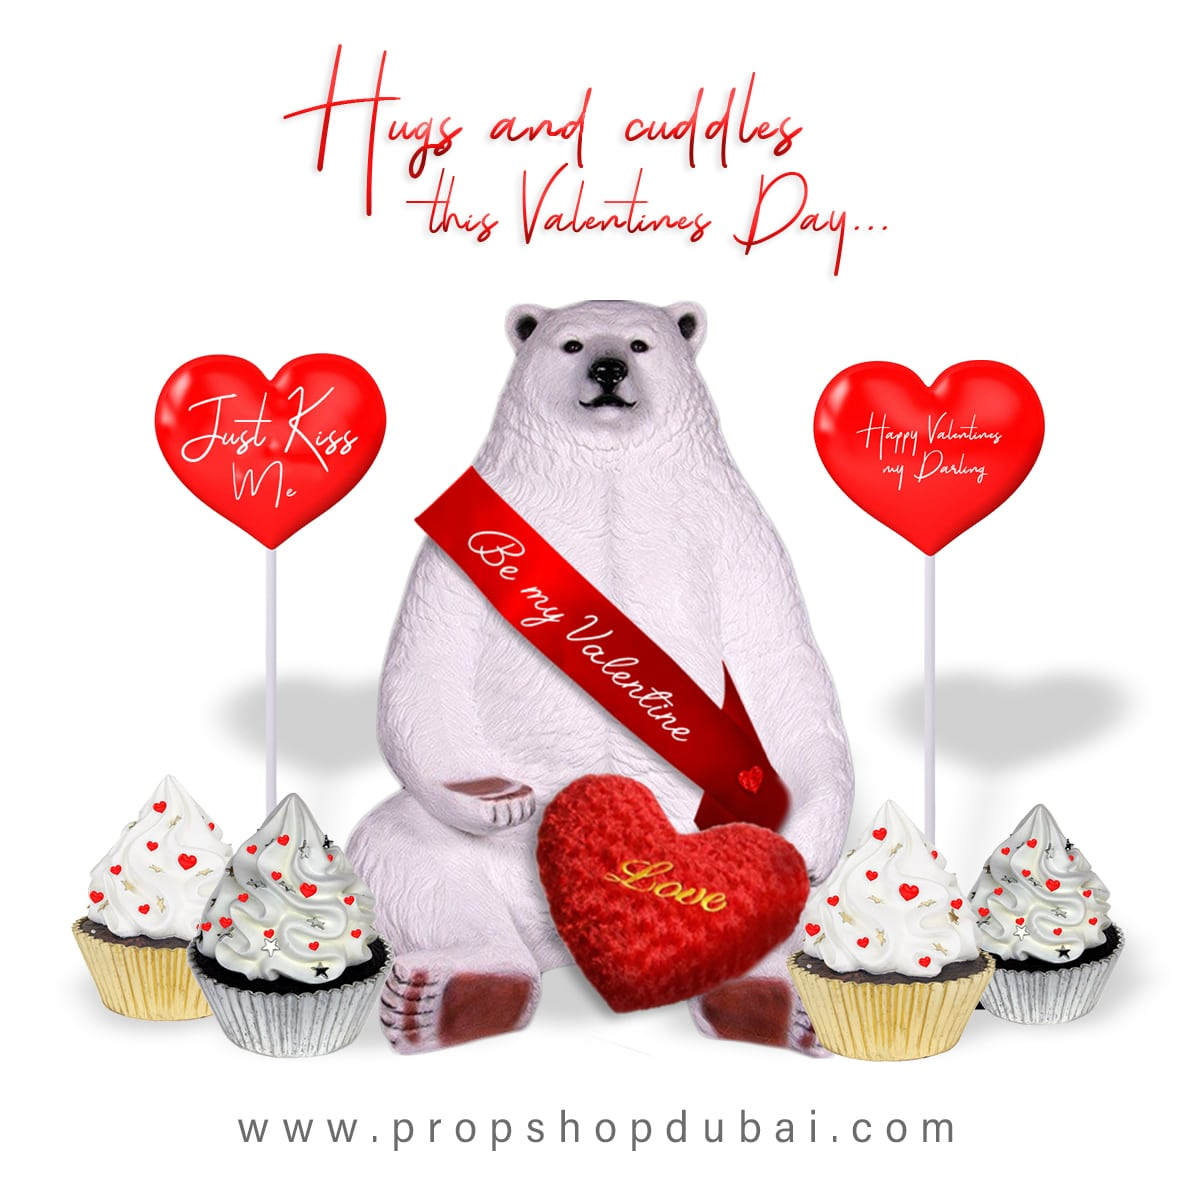 , Make Your Event 'The Greatest Show' with Propshop Dubai's Display Ideas, The Prop Shop